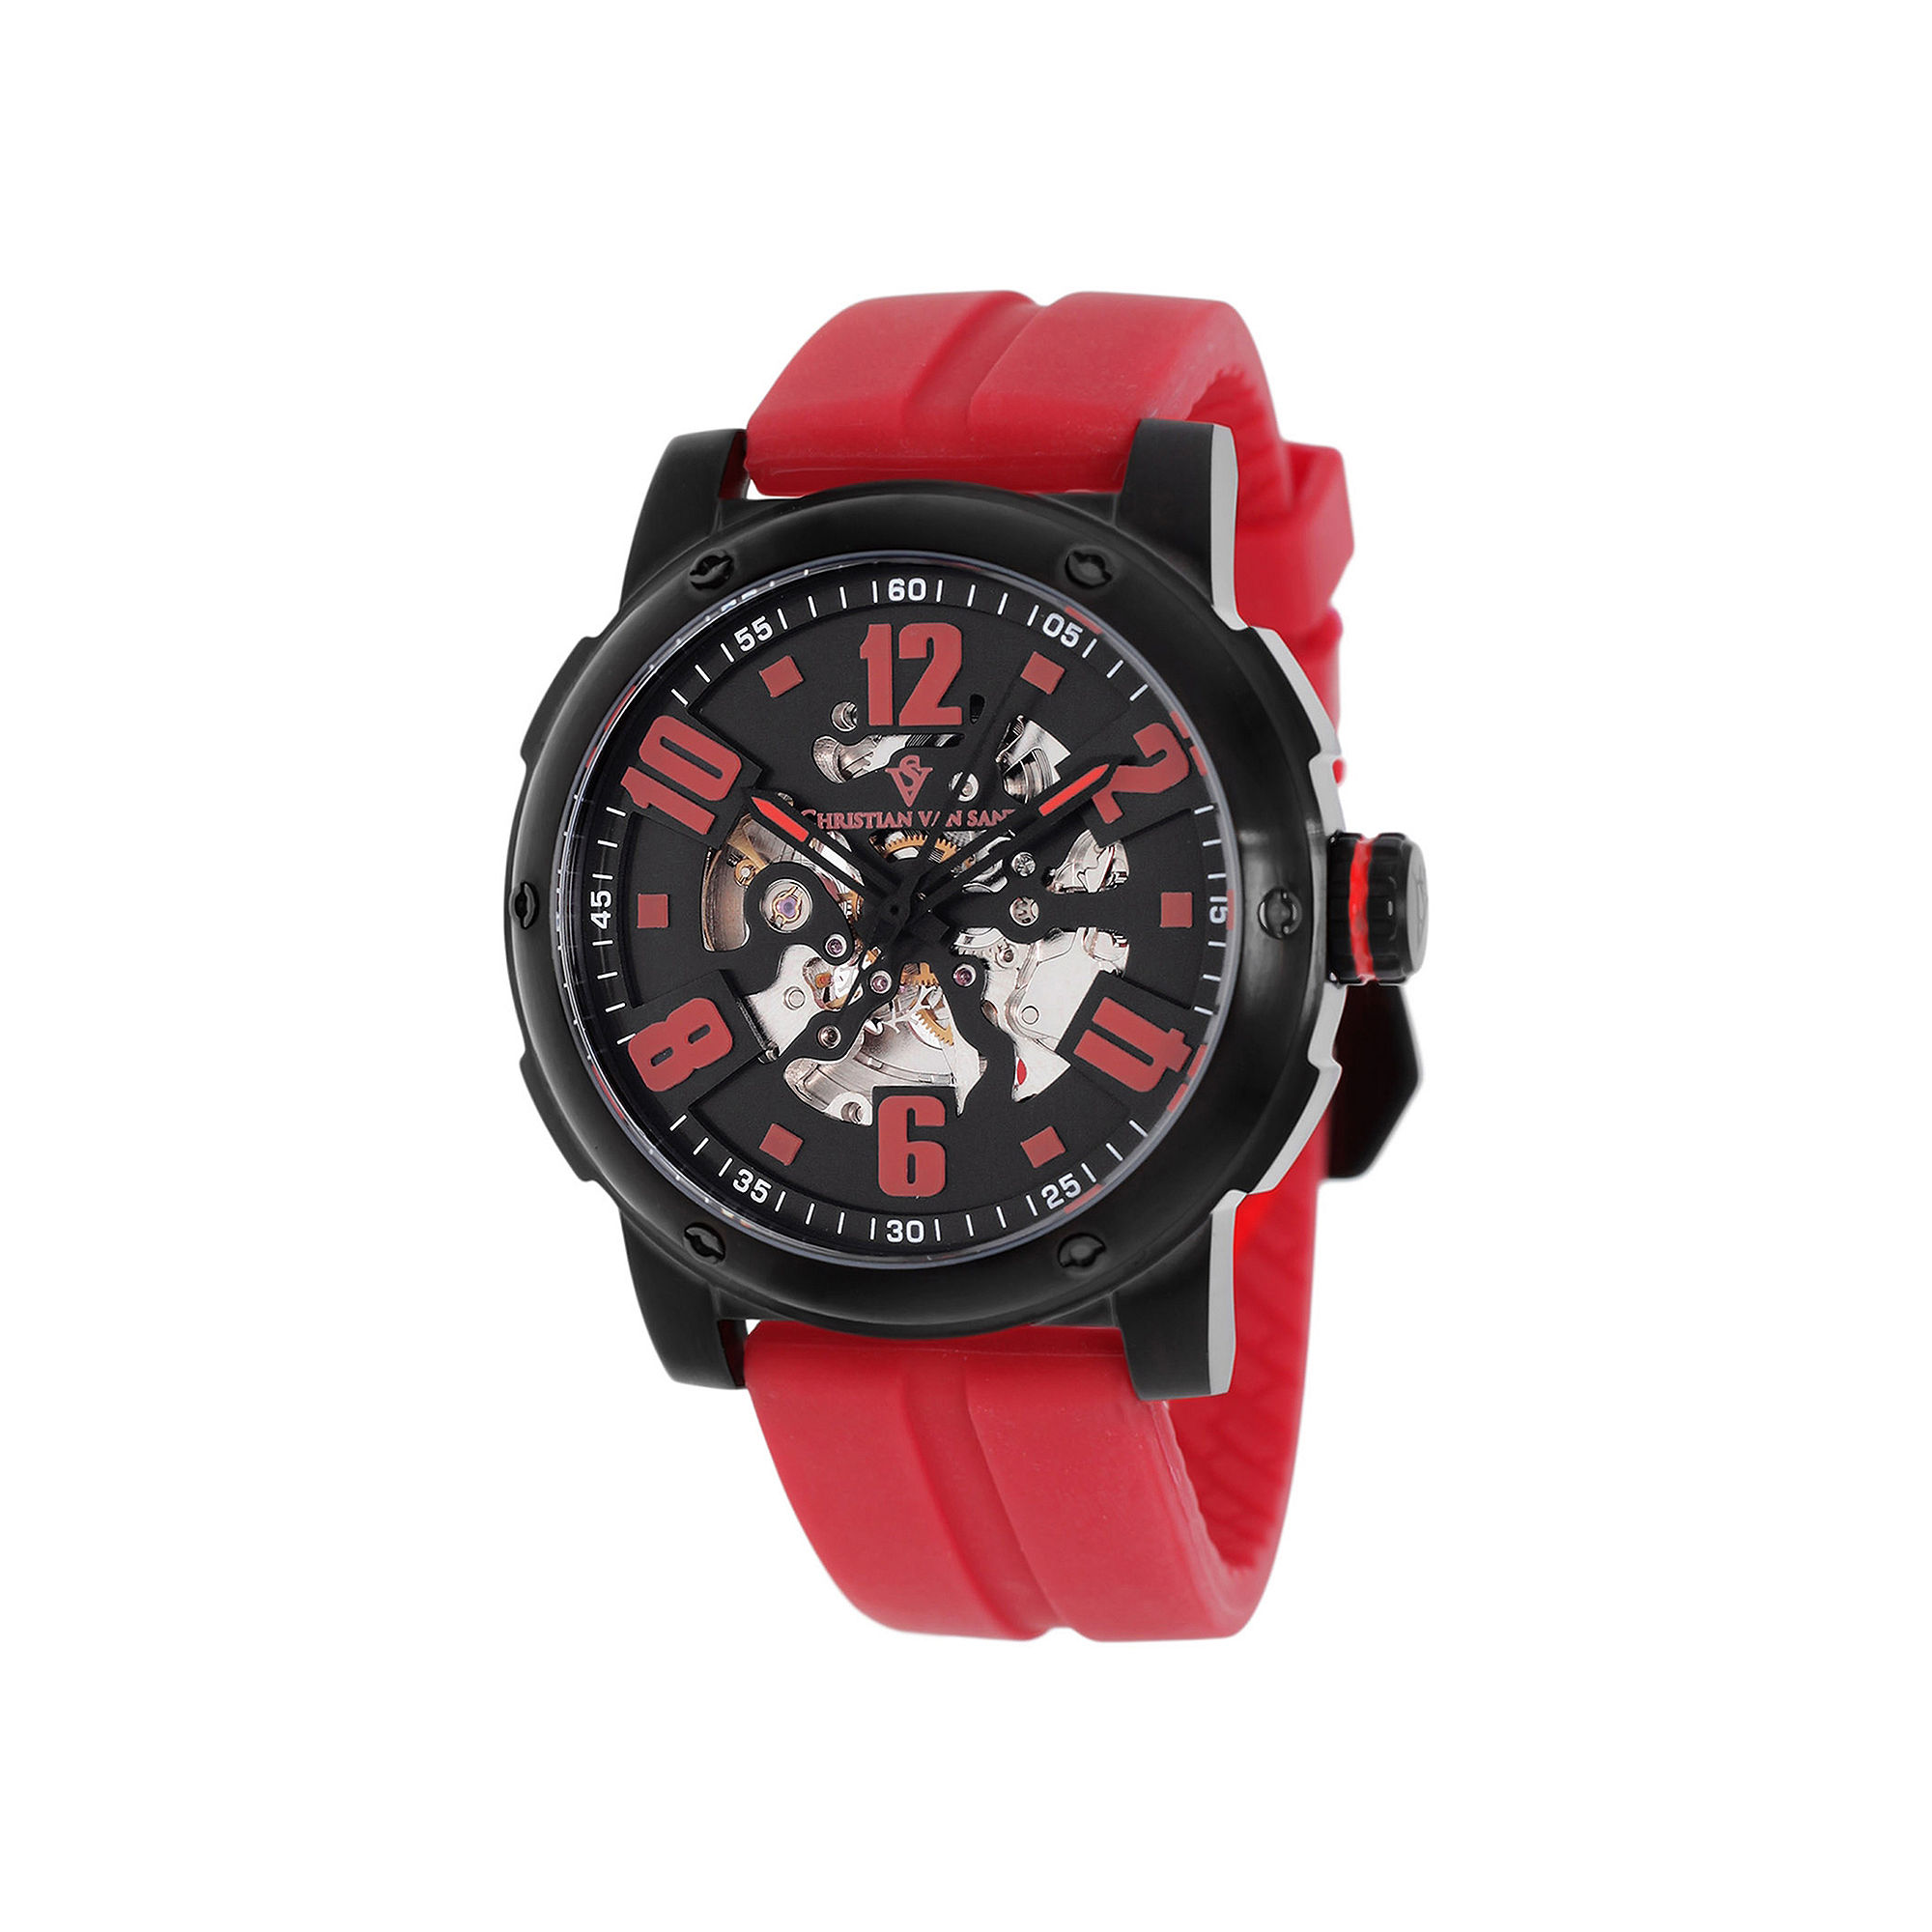 Christian Van Sant Skeleton Mens Black Dial Red Rubber Strap Watch